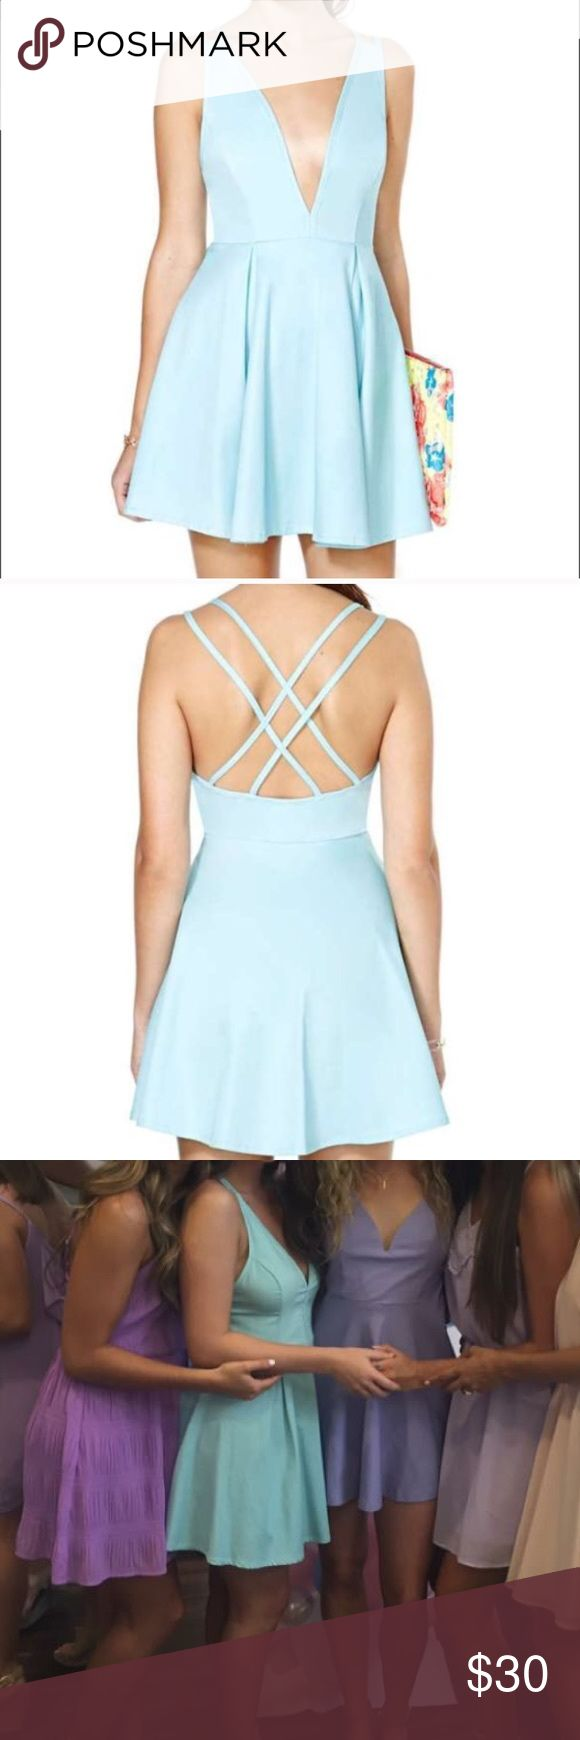 NASTY GAL skater dress Light blue skater dress, worn once! Fits more like a small in my opinion Nasty Gal Dresses Mini